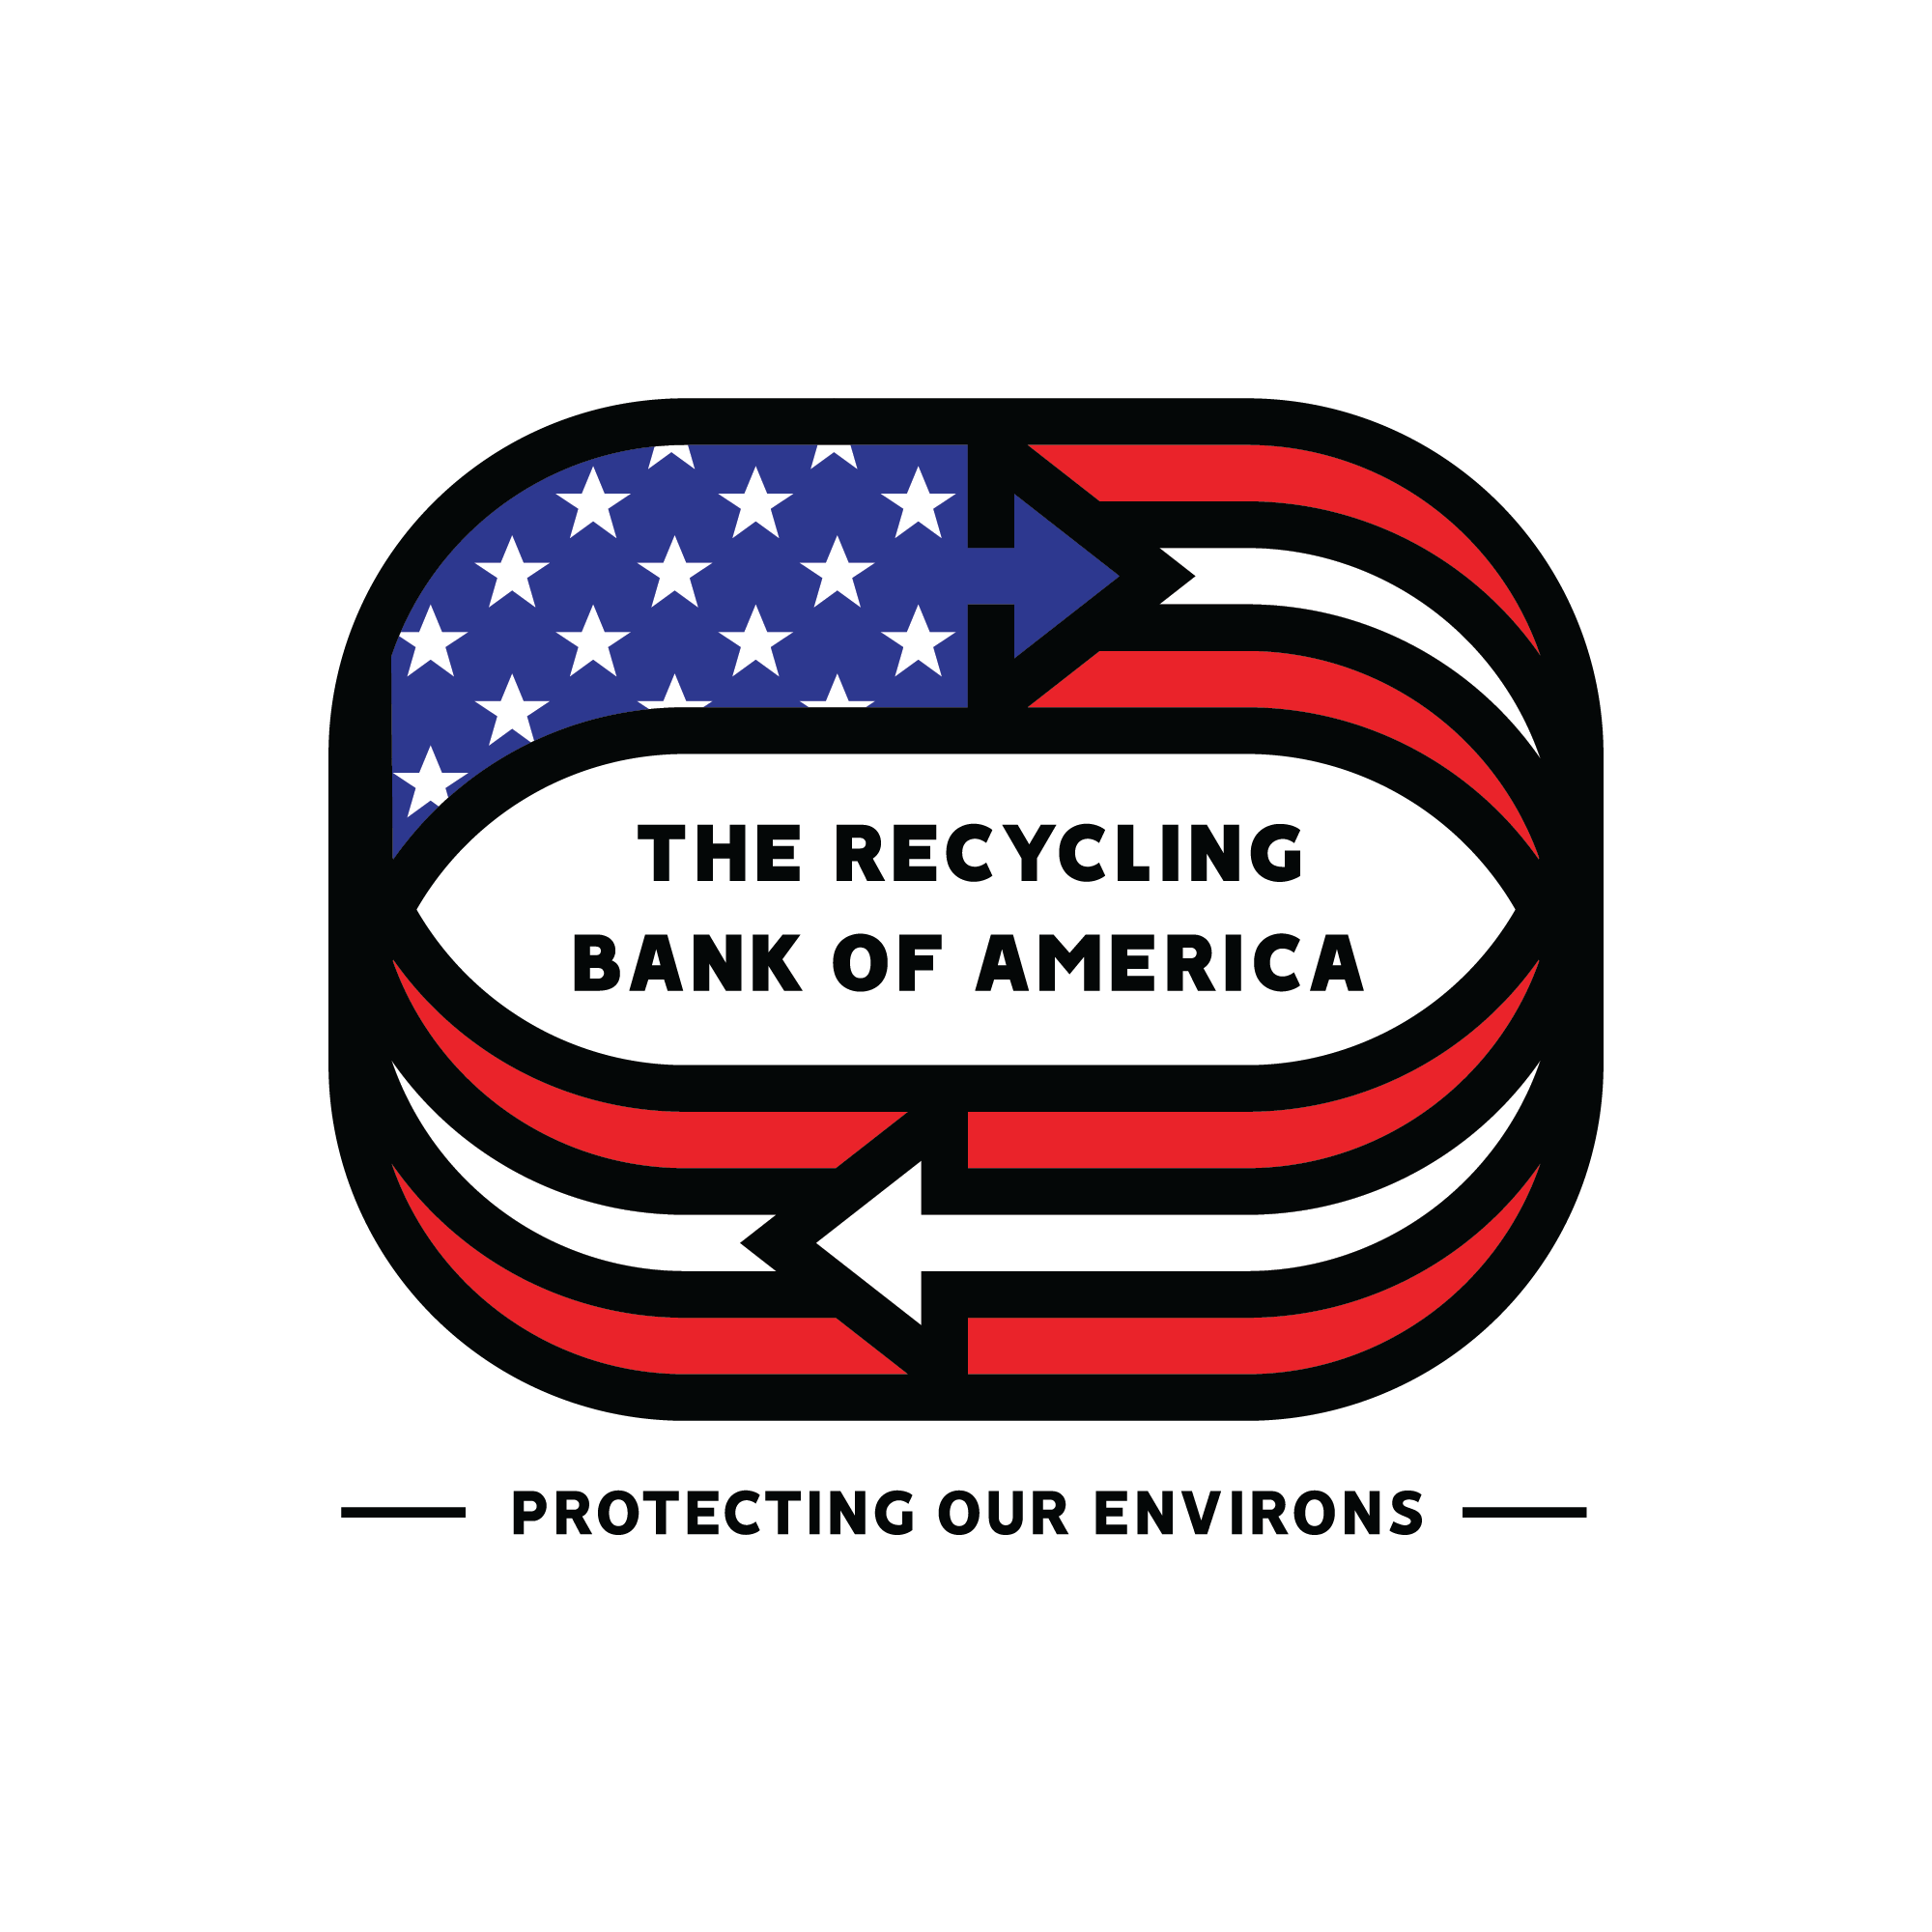 the recycling bank of america